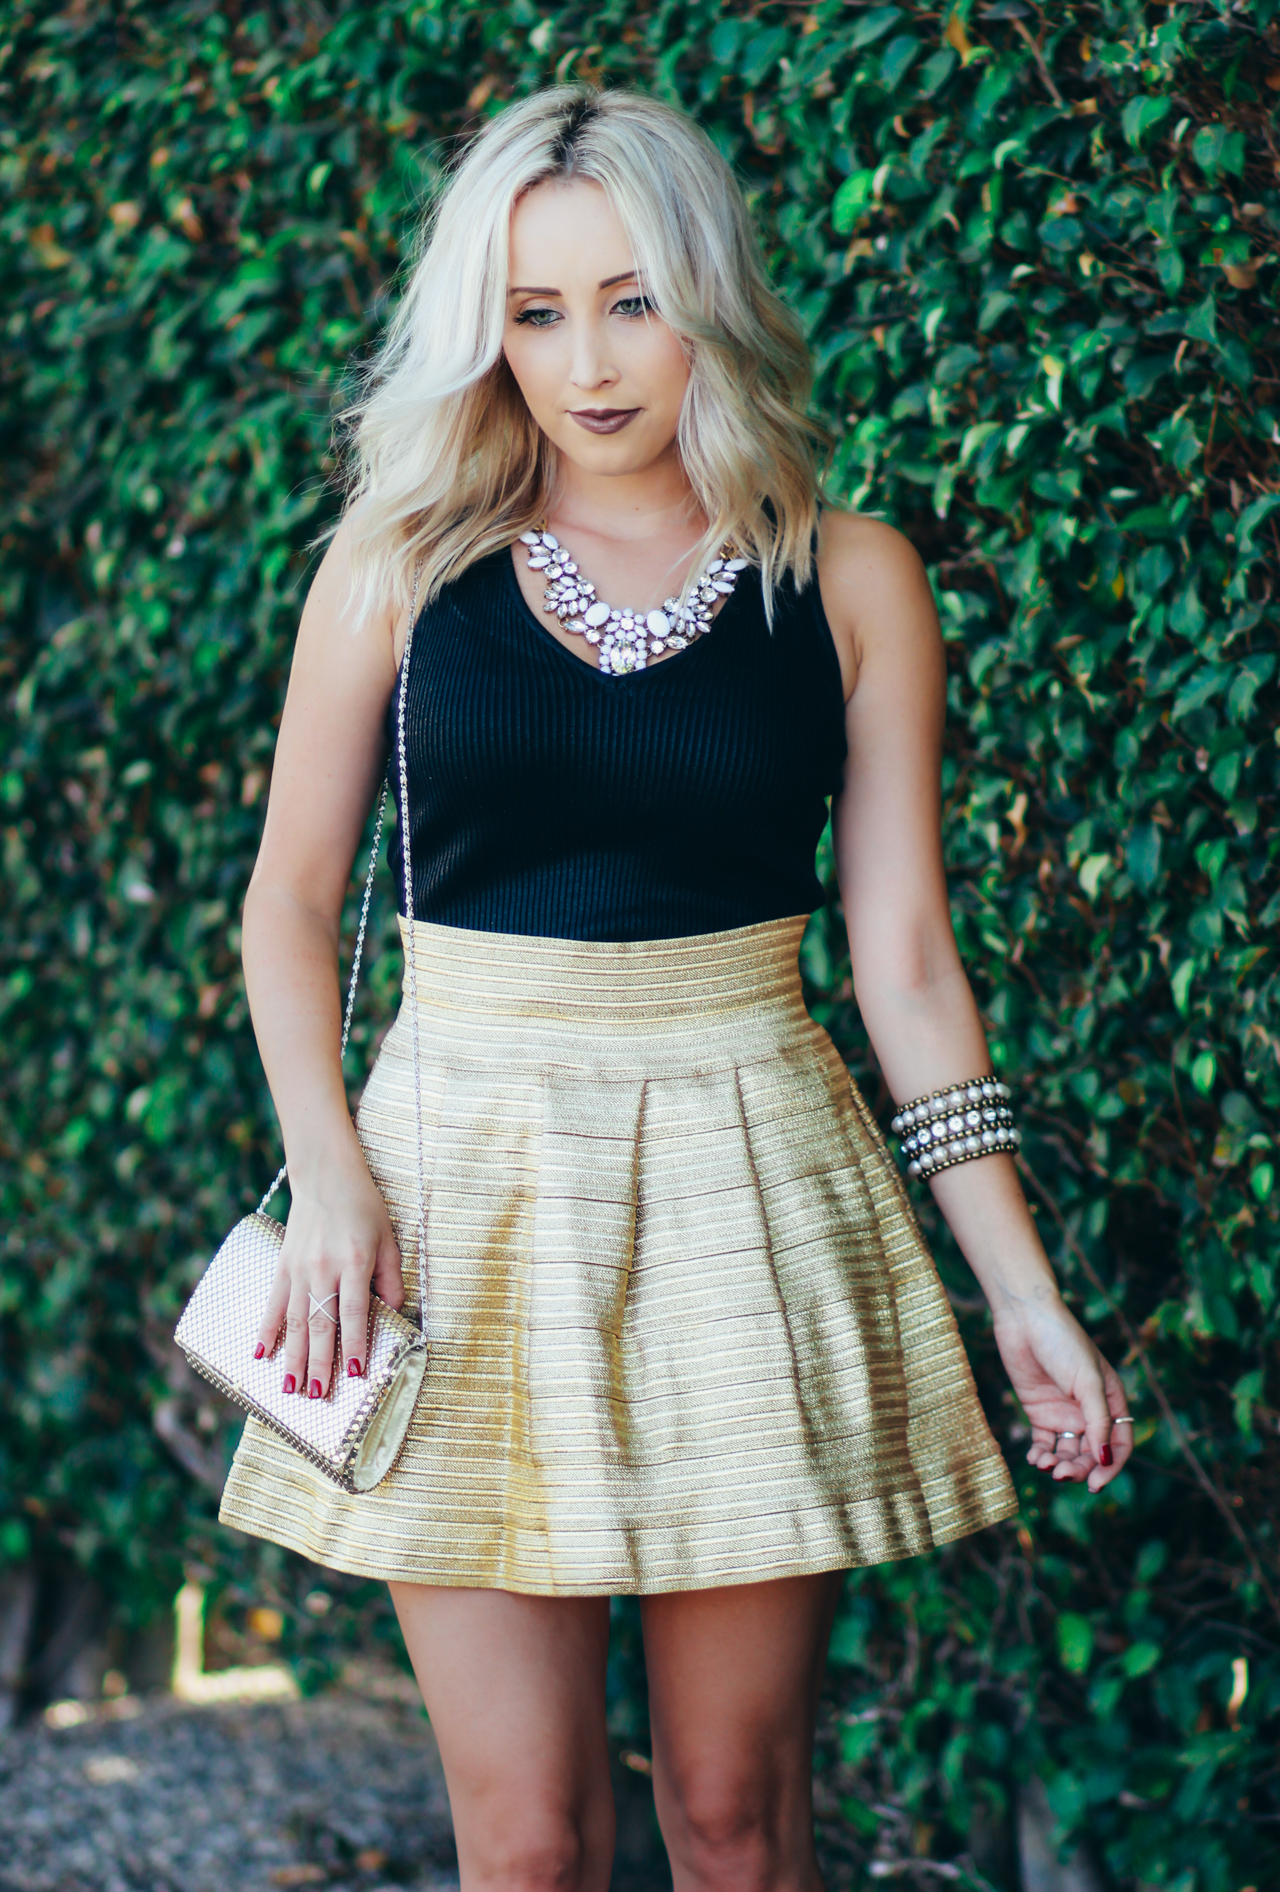 Holiday Outfit - Gold Skirt | StyledByBlondie.com